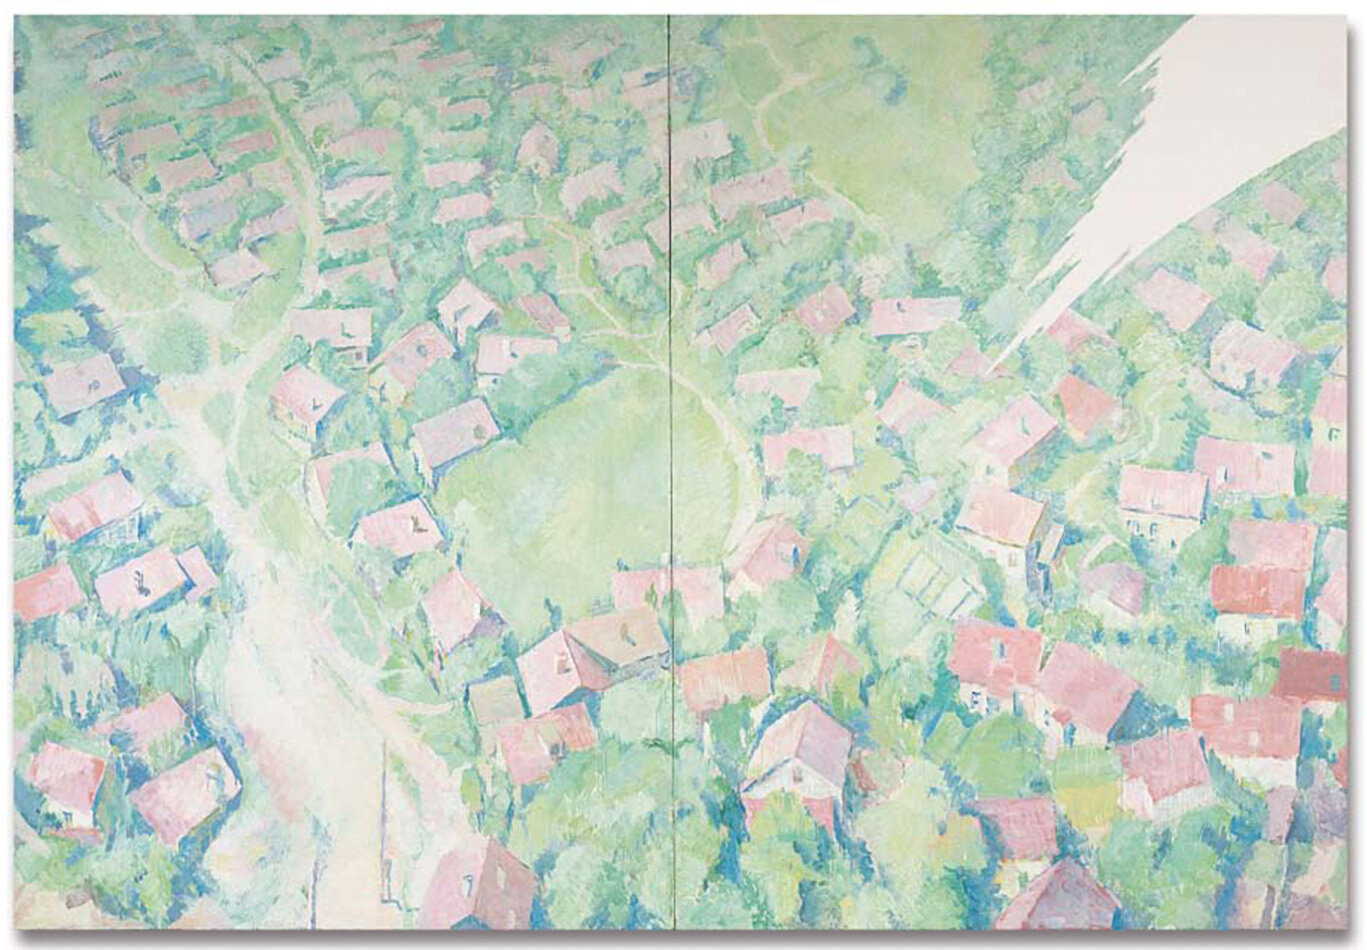 Ripped-Off-Landscape-Oil-and-enamel-on-Masonite-2-panels-each-260-x-190-cm-overall-126-x.jpg